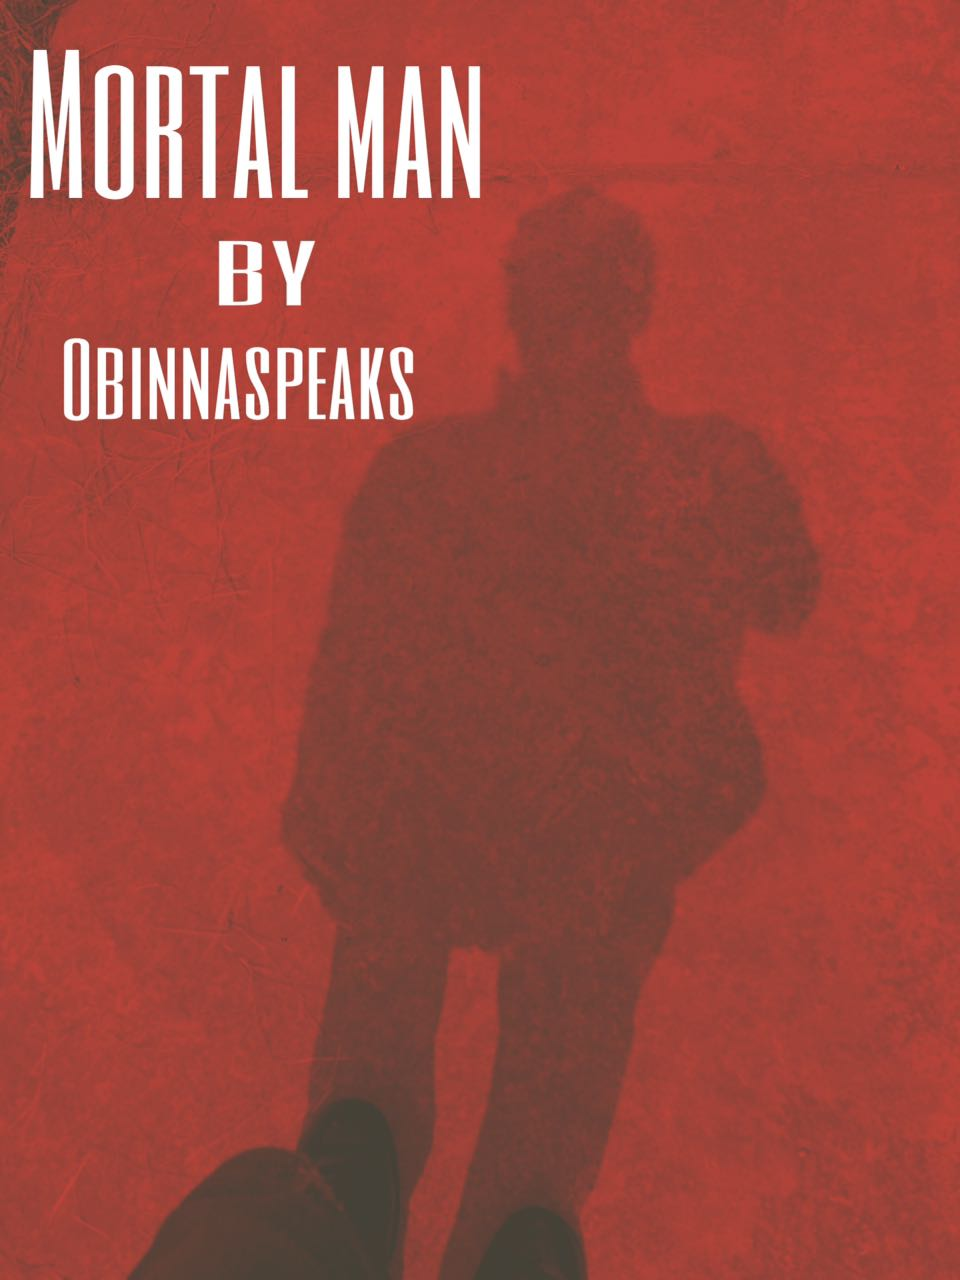 IMG 20170213 WA0002 - MUSIC: Obinnaspeaks - 'Mortal Men' | LISTEN